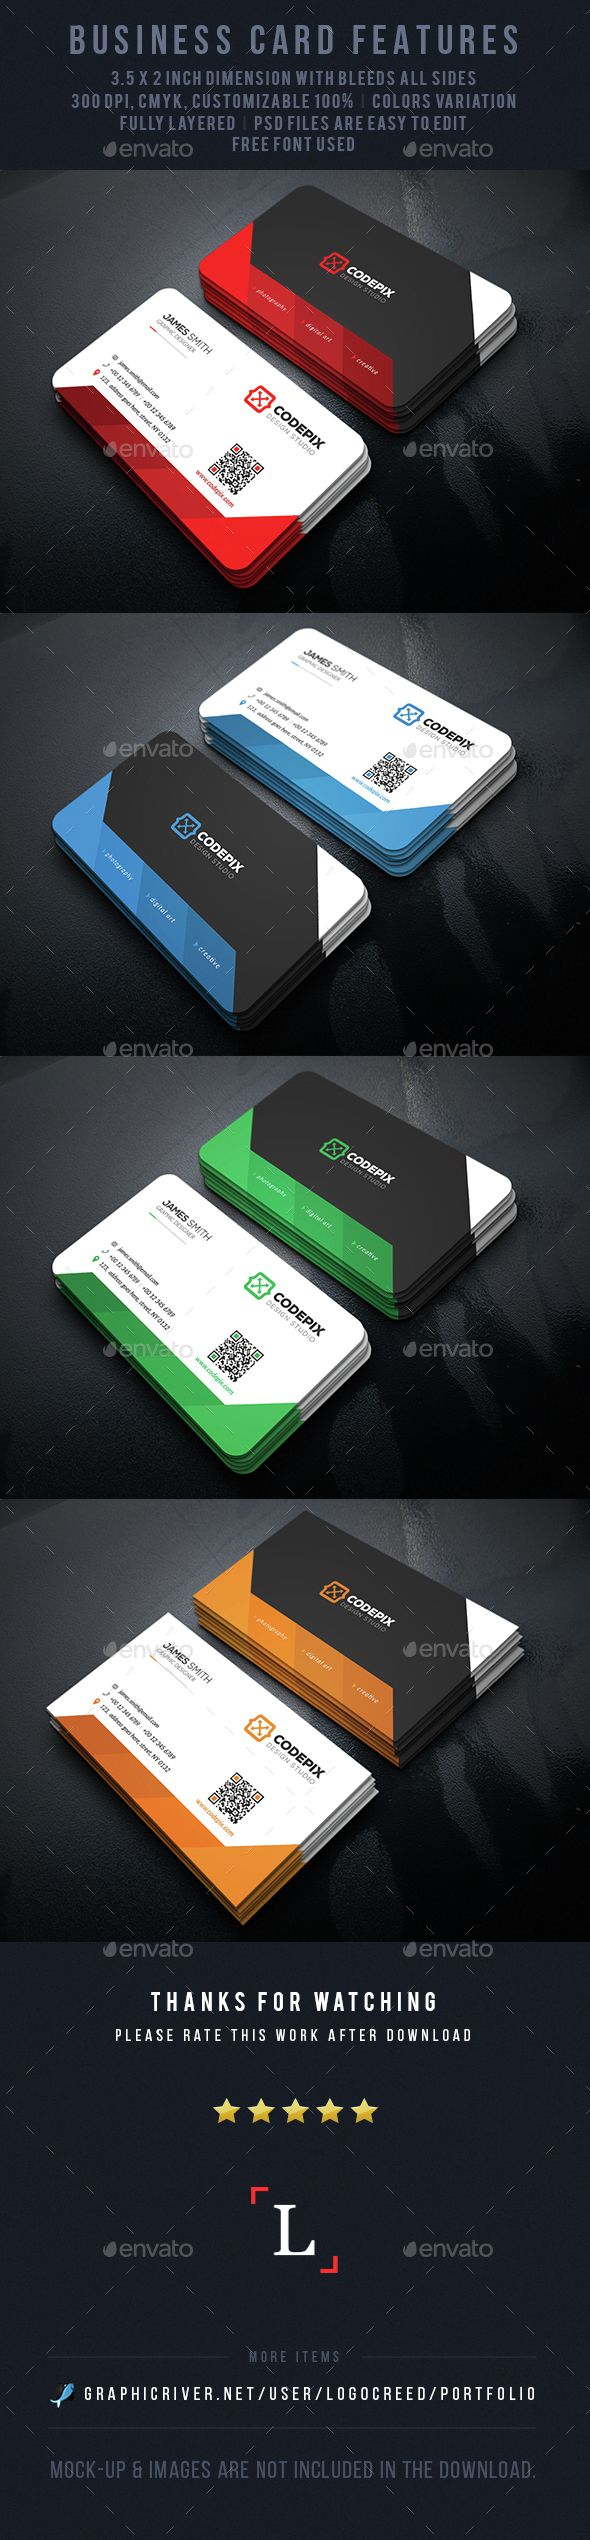 Shade Corporate Business Card Template PSD. Download here: http://graphicriver.net/item/shade-corporate-business-card/14867985?ref=ksioks